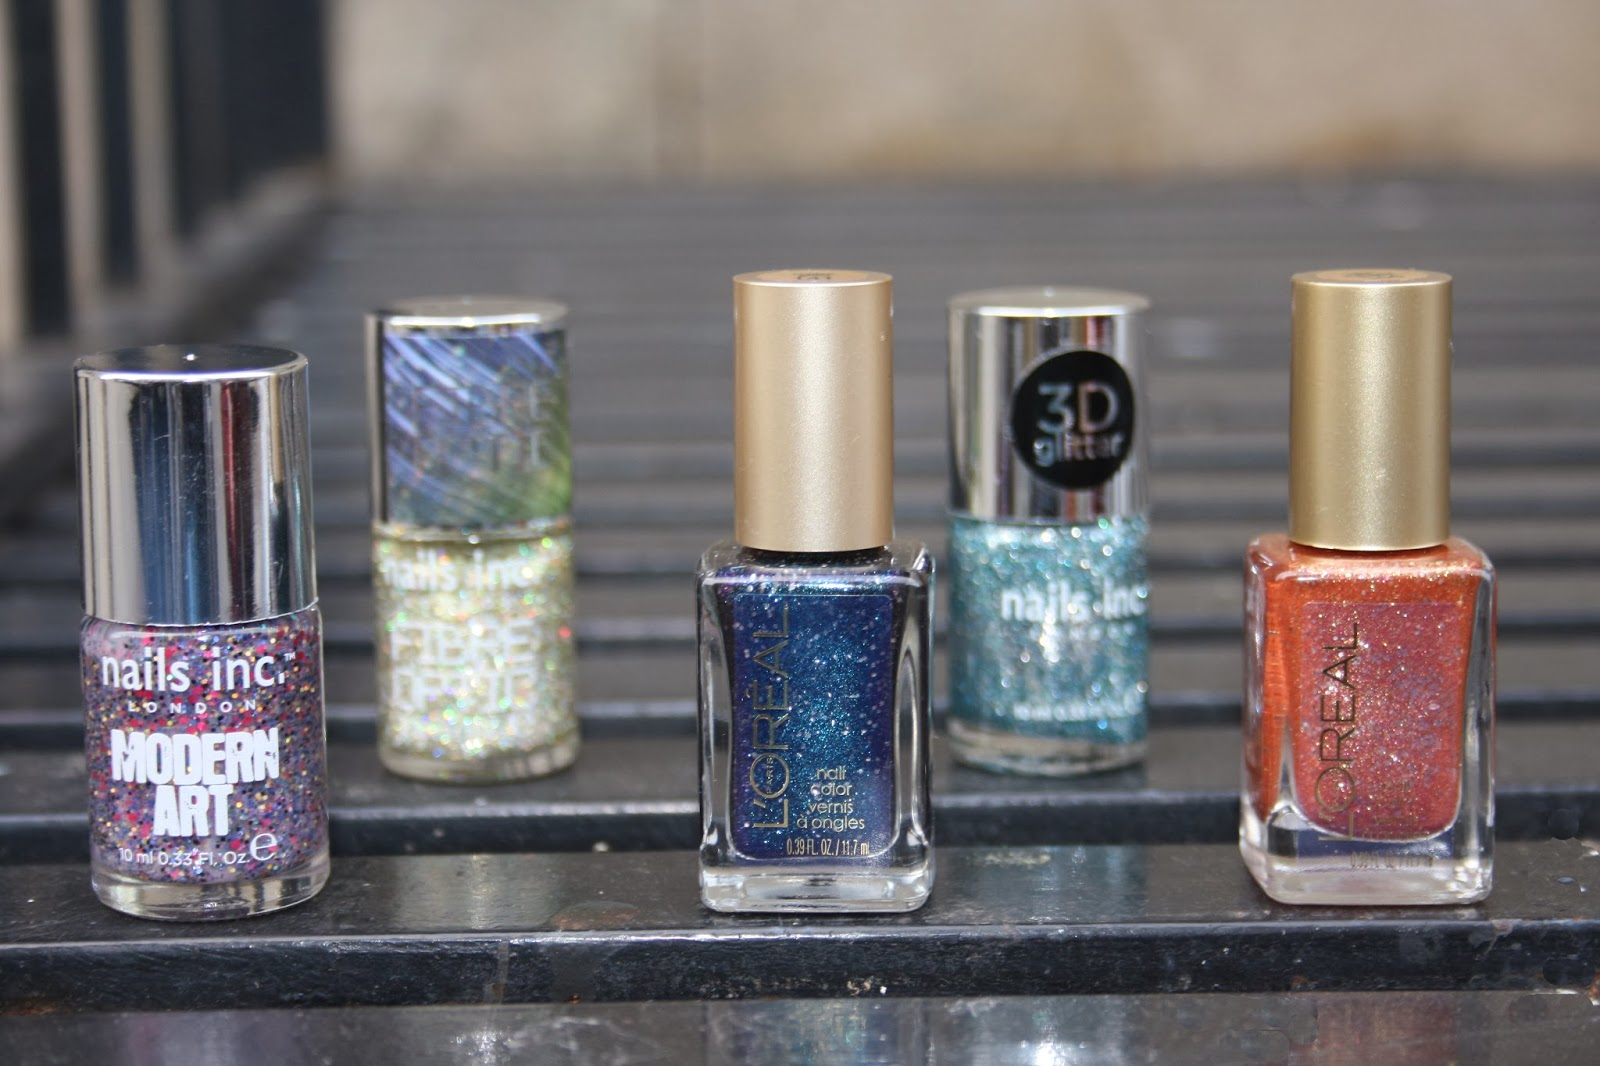 left: Nails Inc. Modern Art, Loreal Hidden Gems, Loreal I Like It Chunky